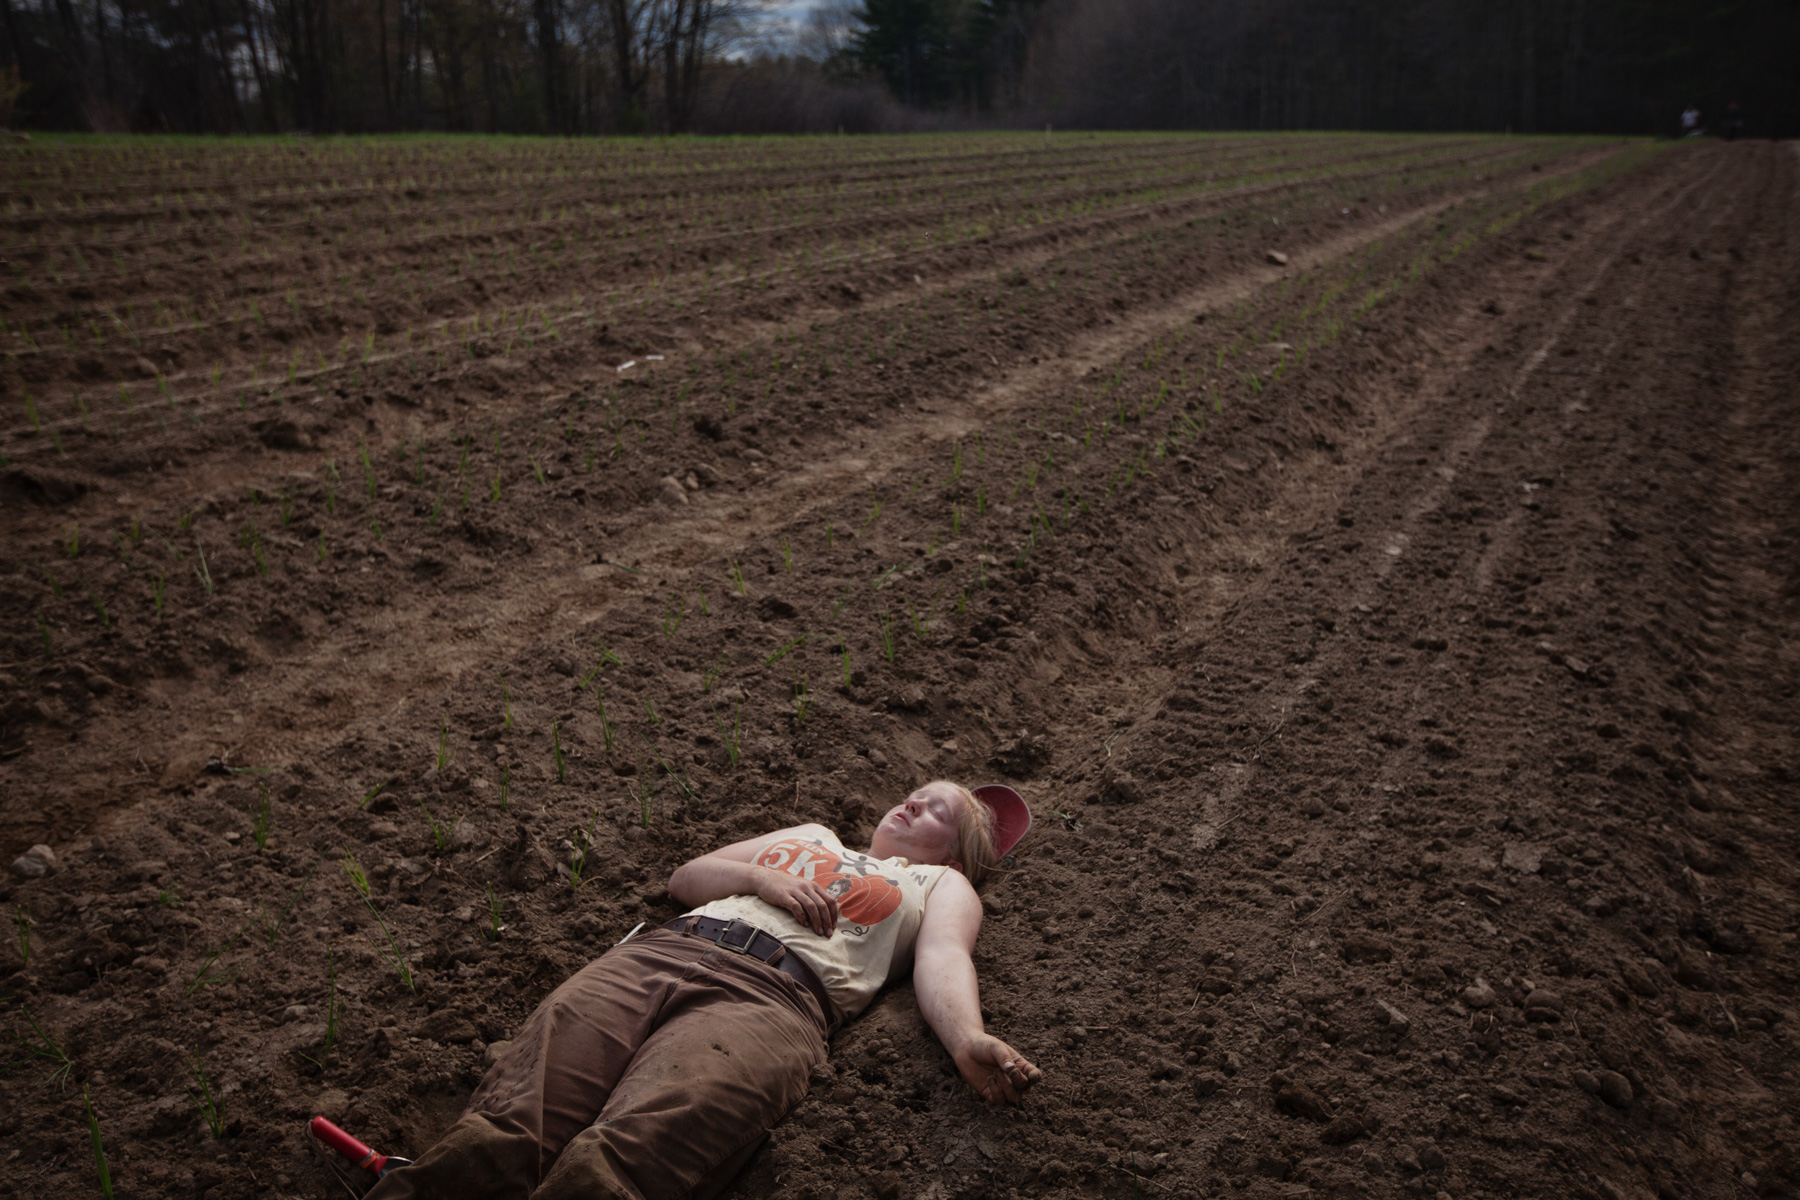 transplant-exhaustion-farm-1.jpg